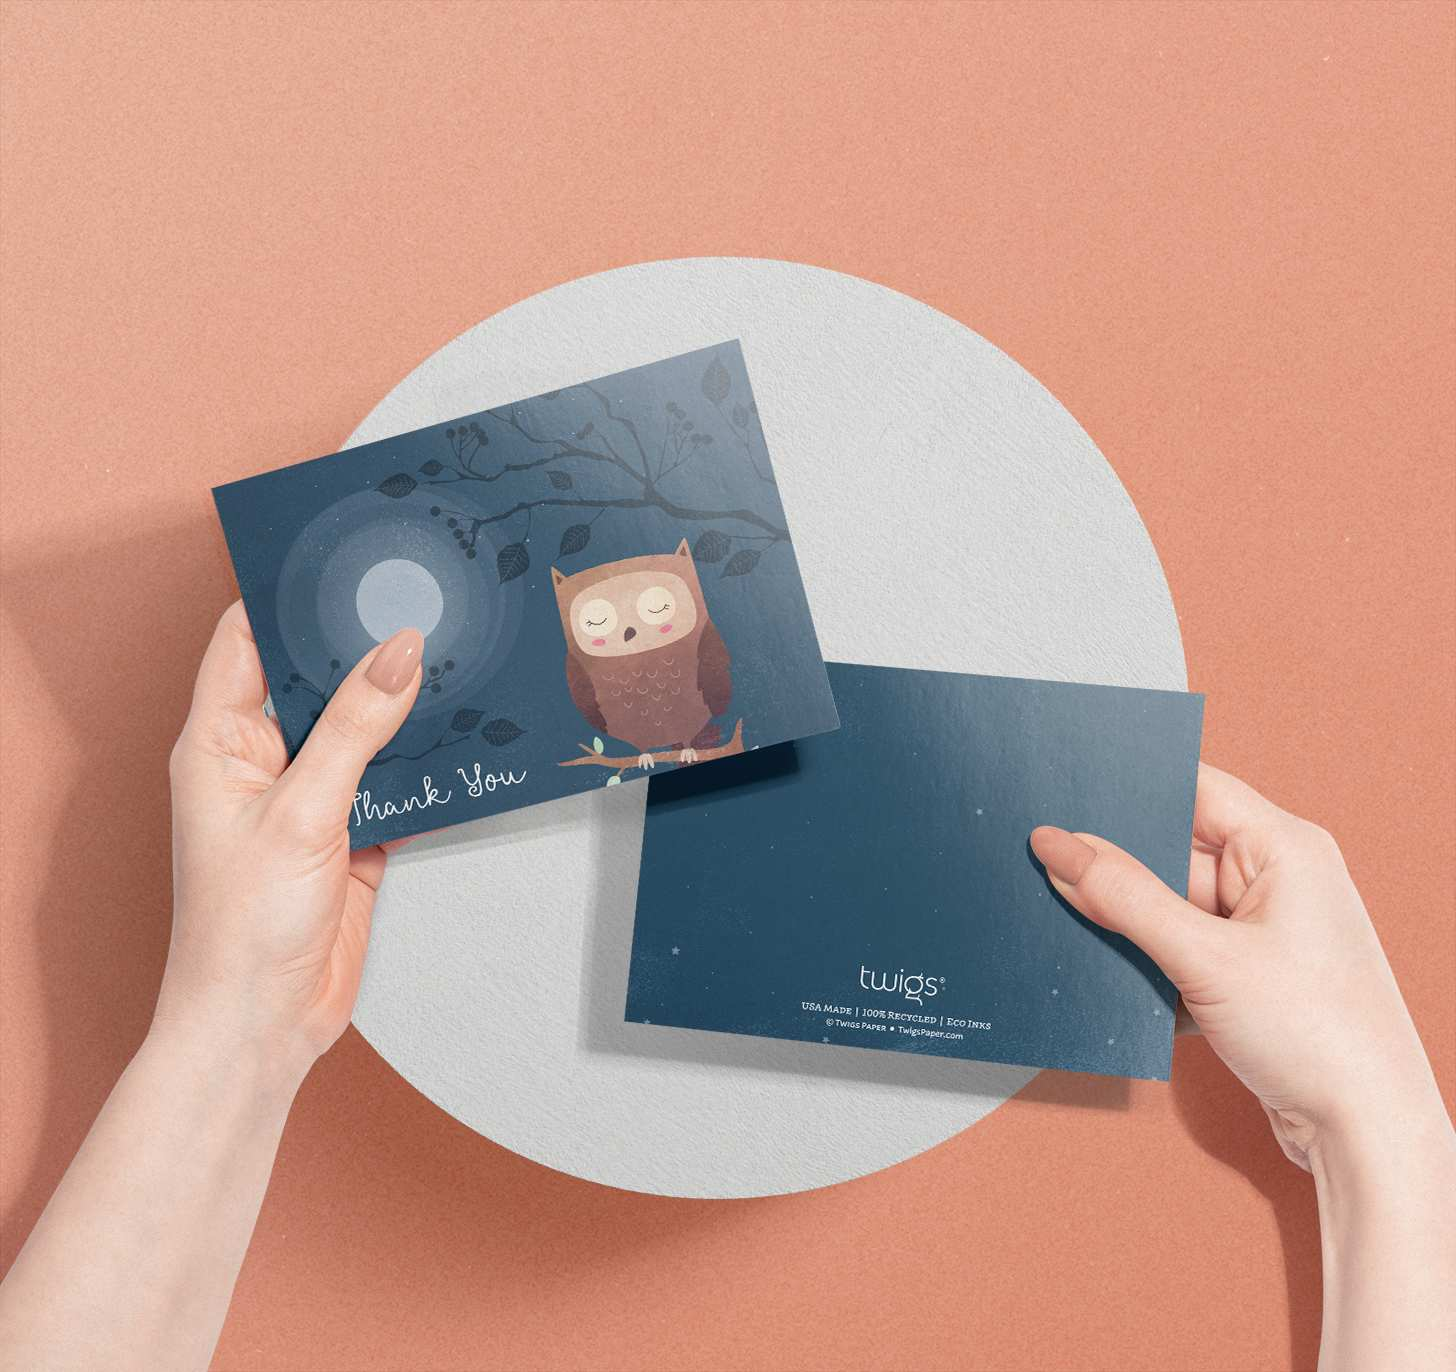 Woman's hands holding card with cute brown owl on dark blue nighttime design